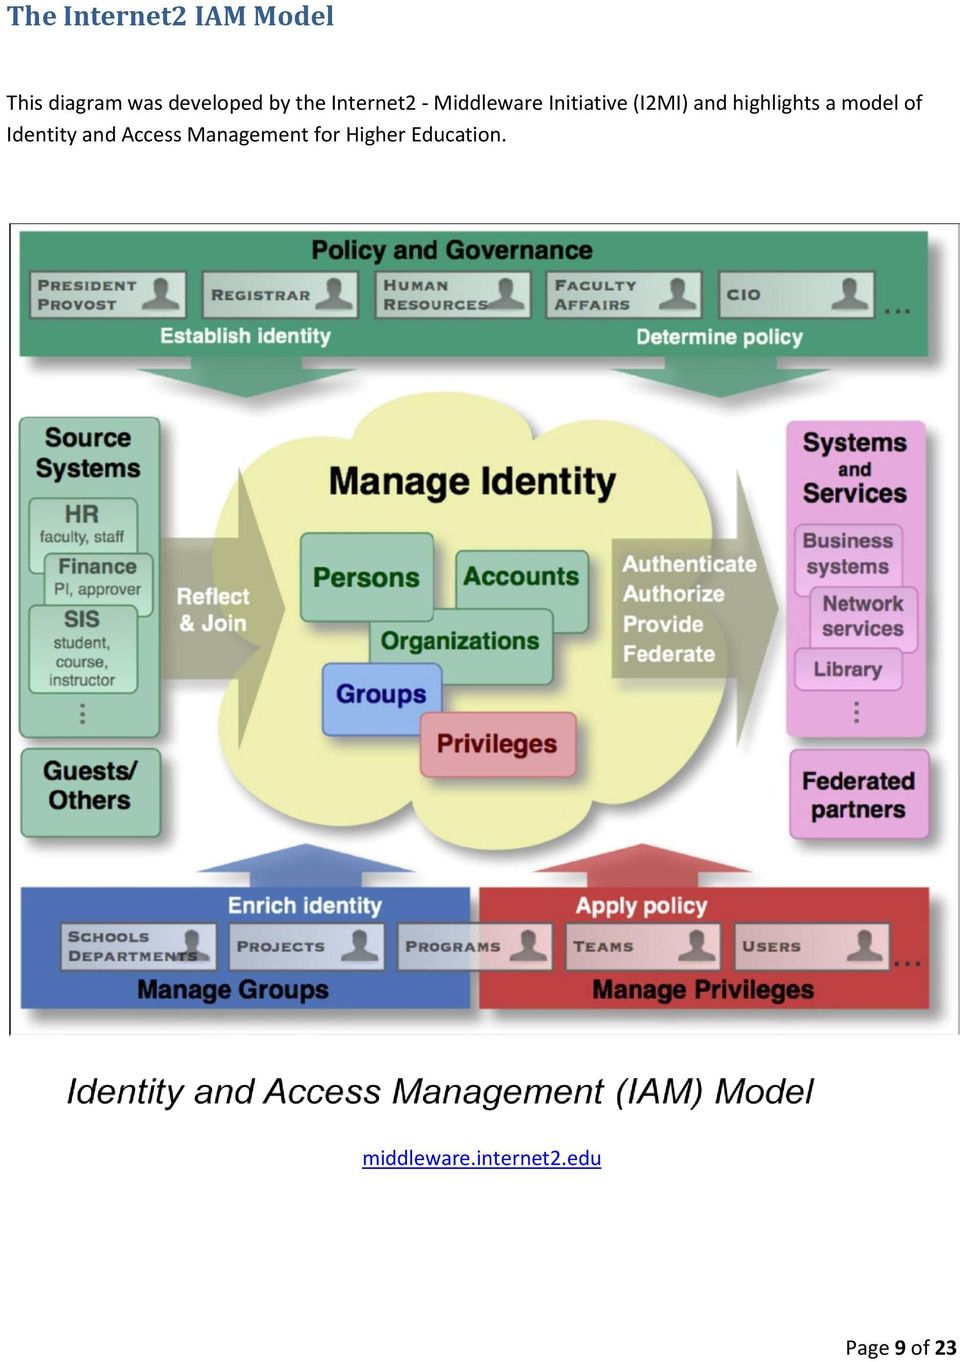 highlights a model of Identity and Access Management